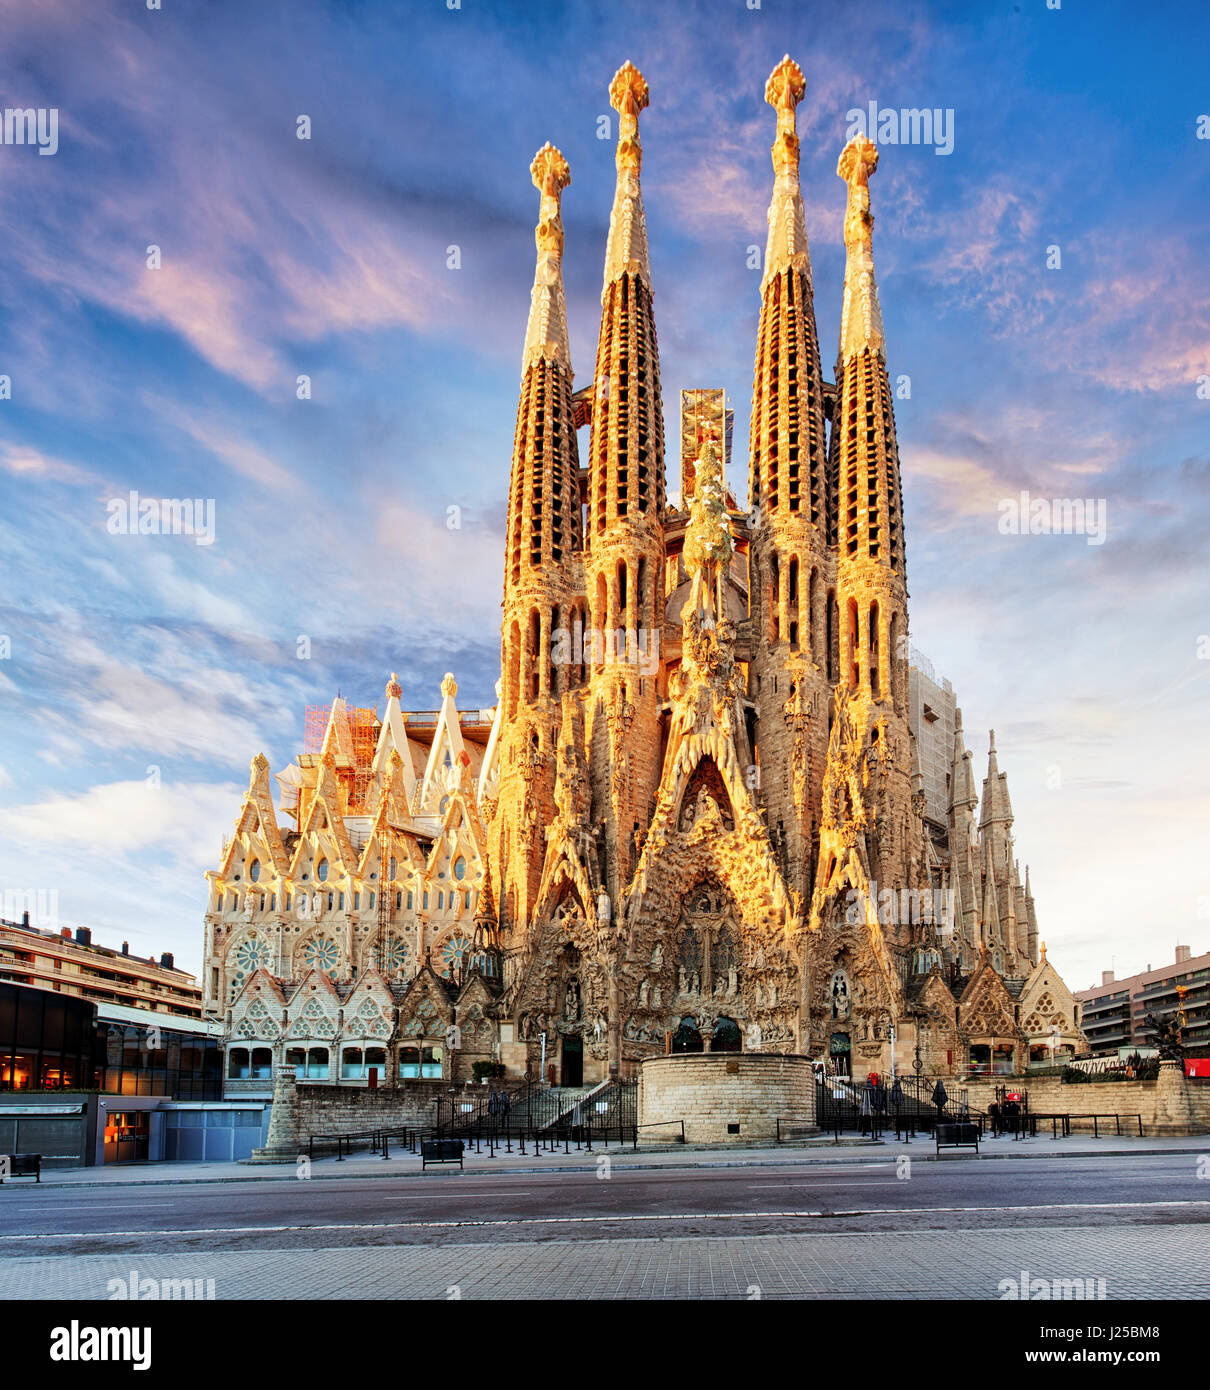 BARCELONA, SPAIN - FEB 10: View of the Sagrada Familia, a large Roman Catholic church in Barcelona, Spain, designed - Stock Image